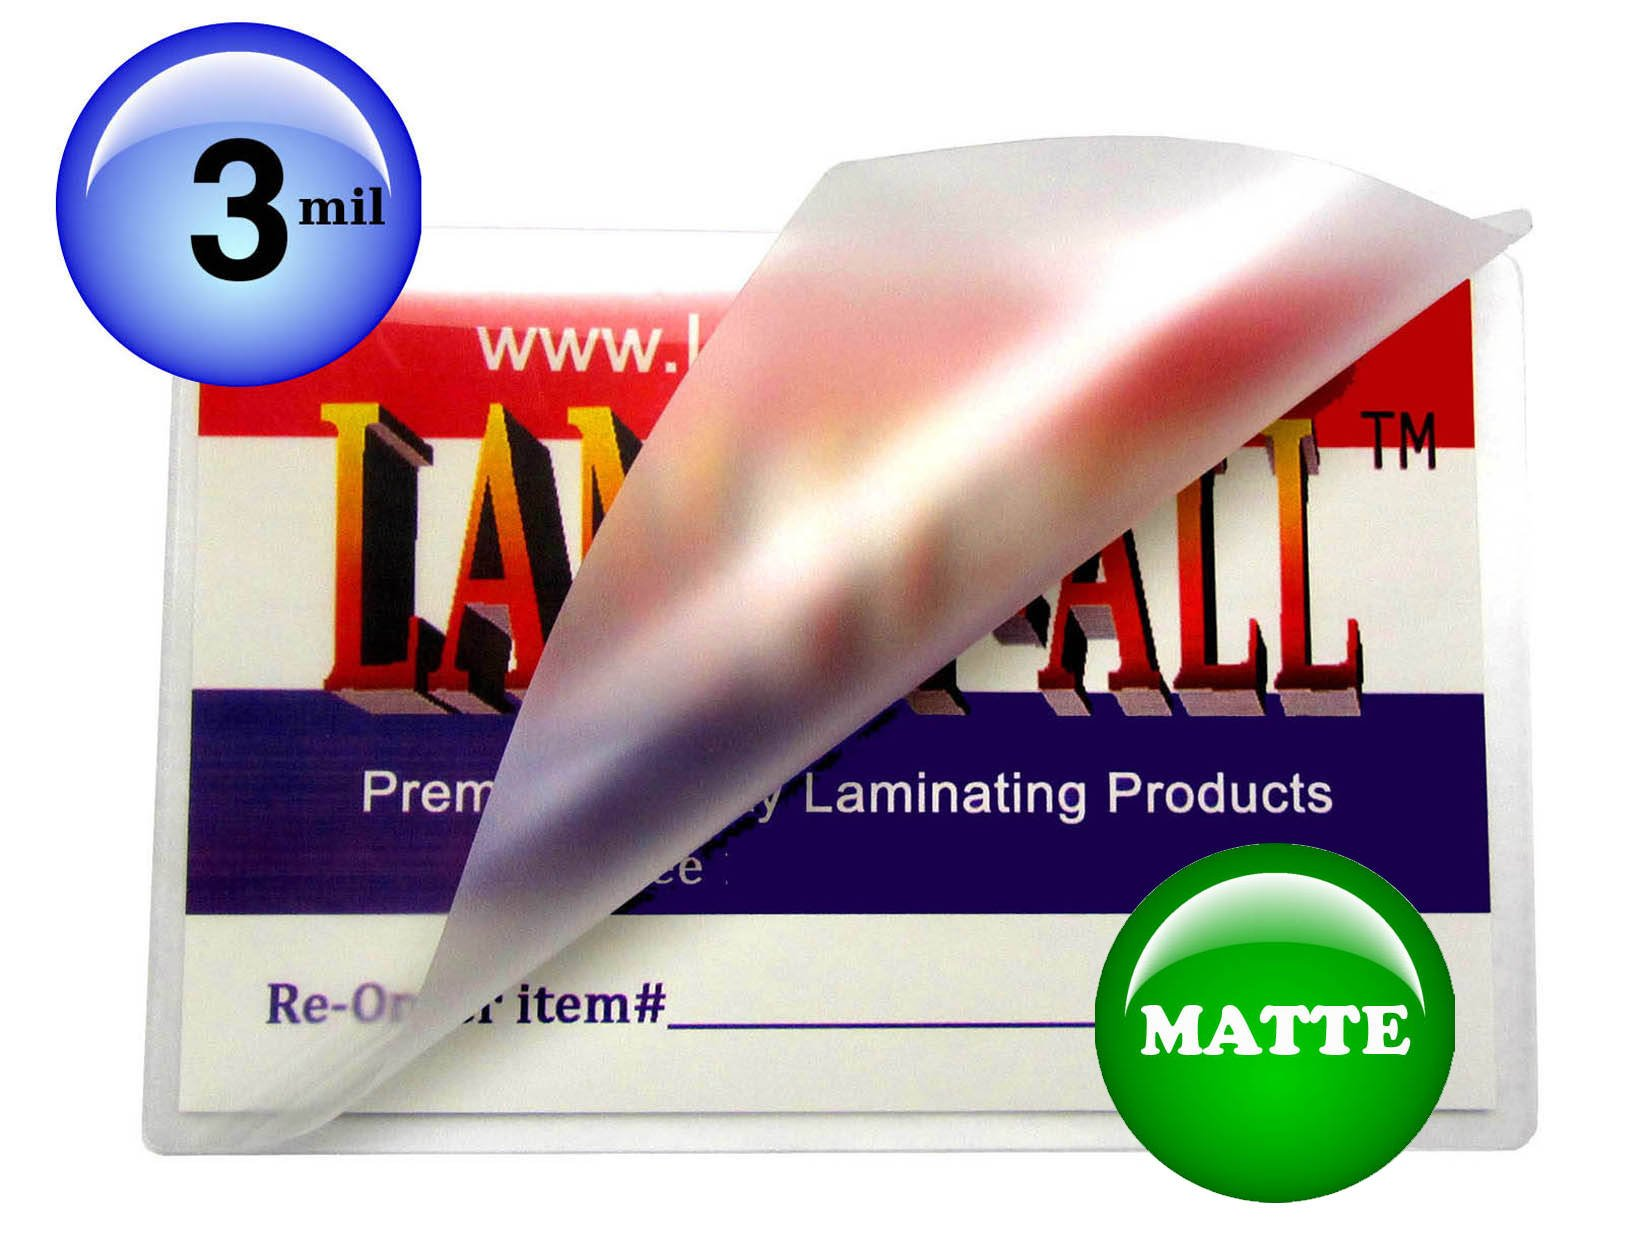 LAM-IT-ALL Hot Laminating Pouches Business Card (pack of 1,000) 3 Mil 2-1/4 x 3-3/4-inch Matte/Matte